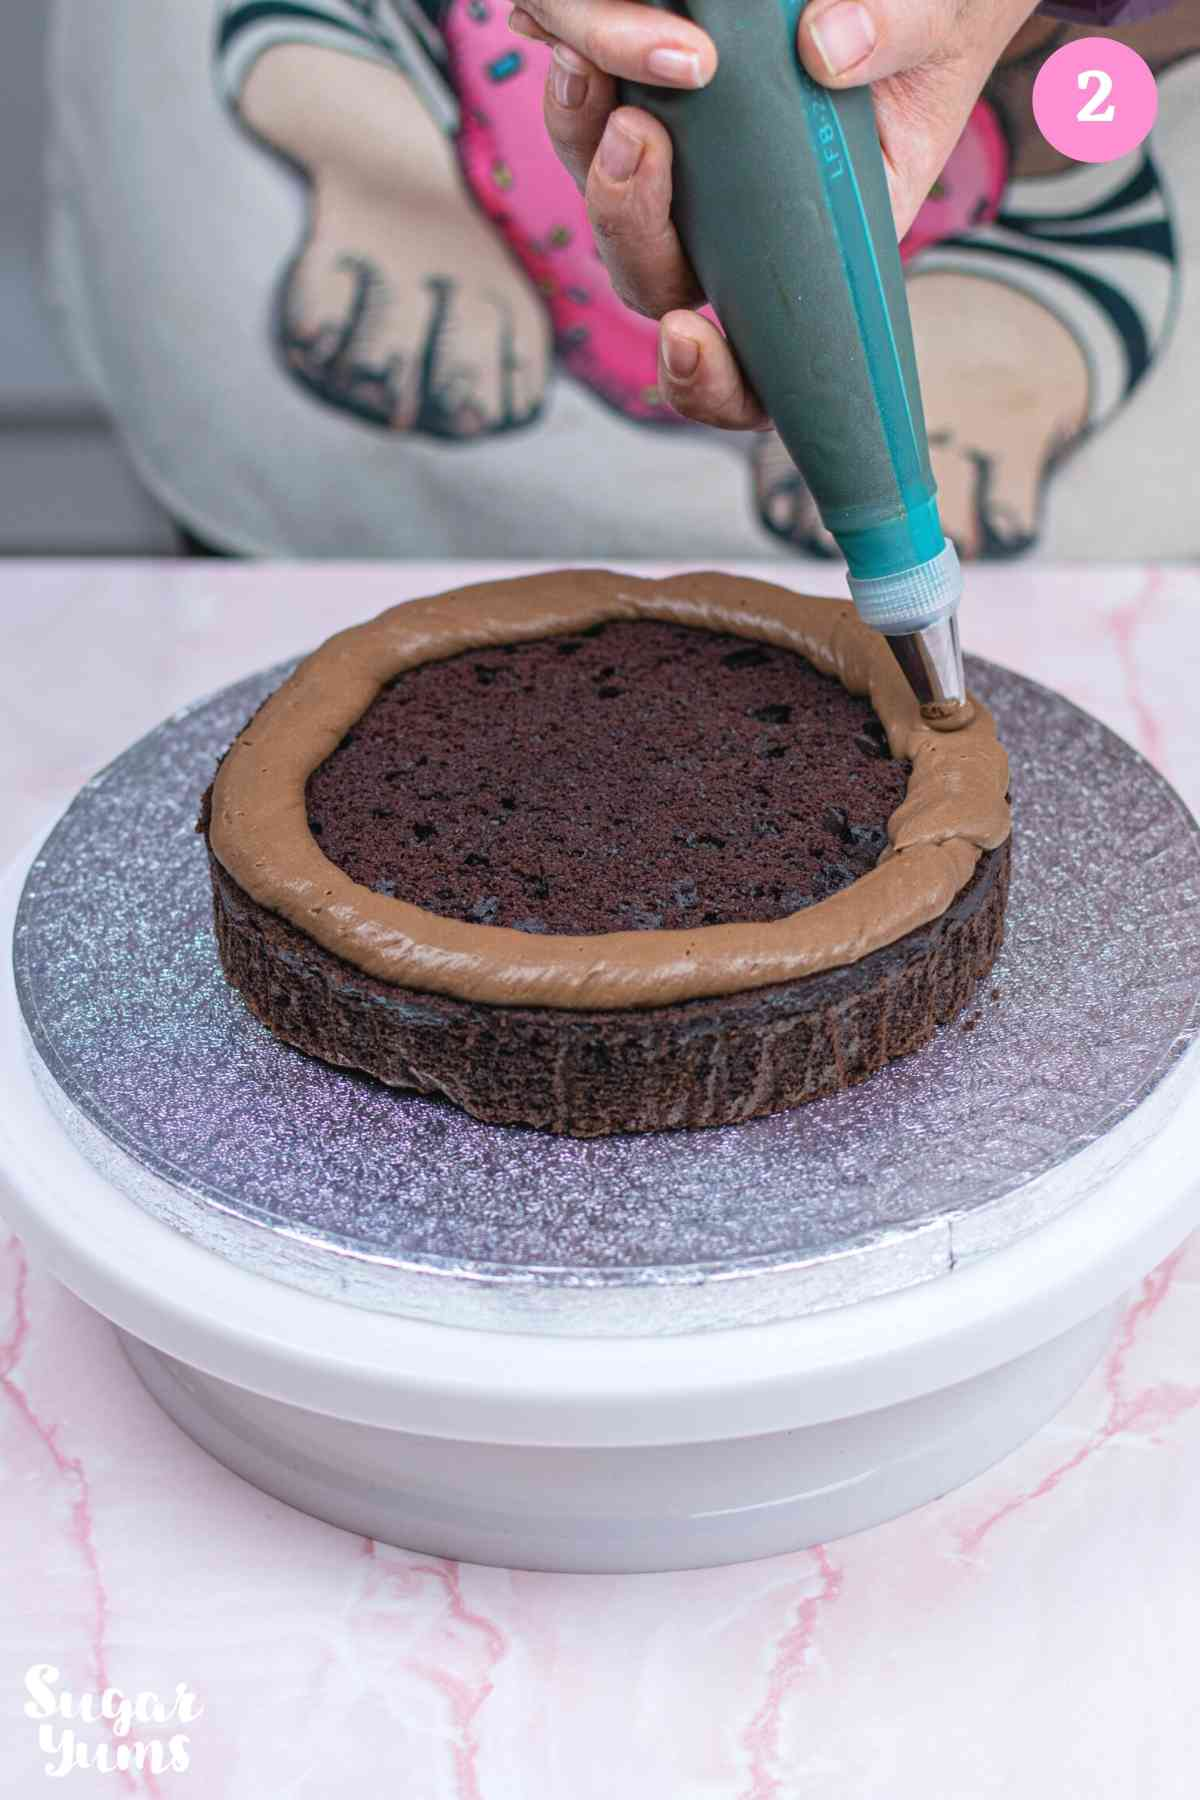 Piping chocolate ganache ring on top of sponge